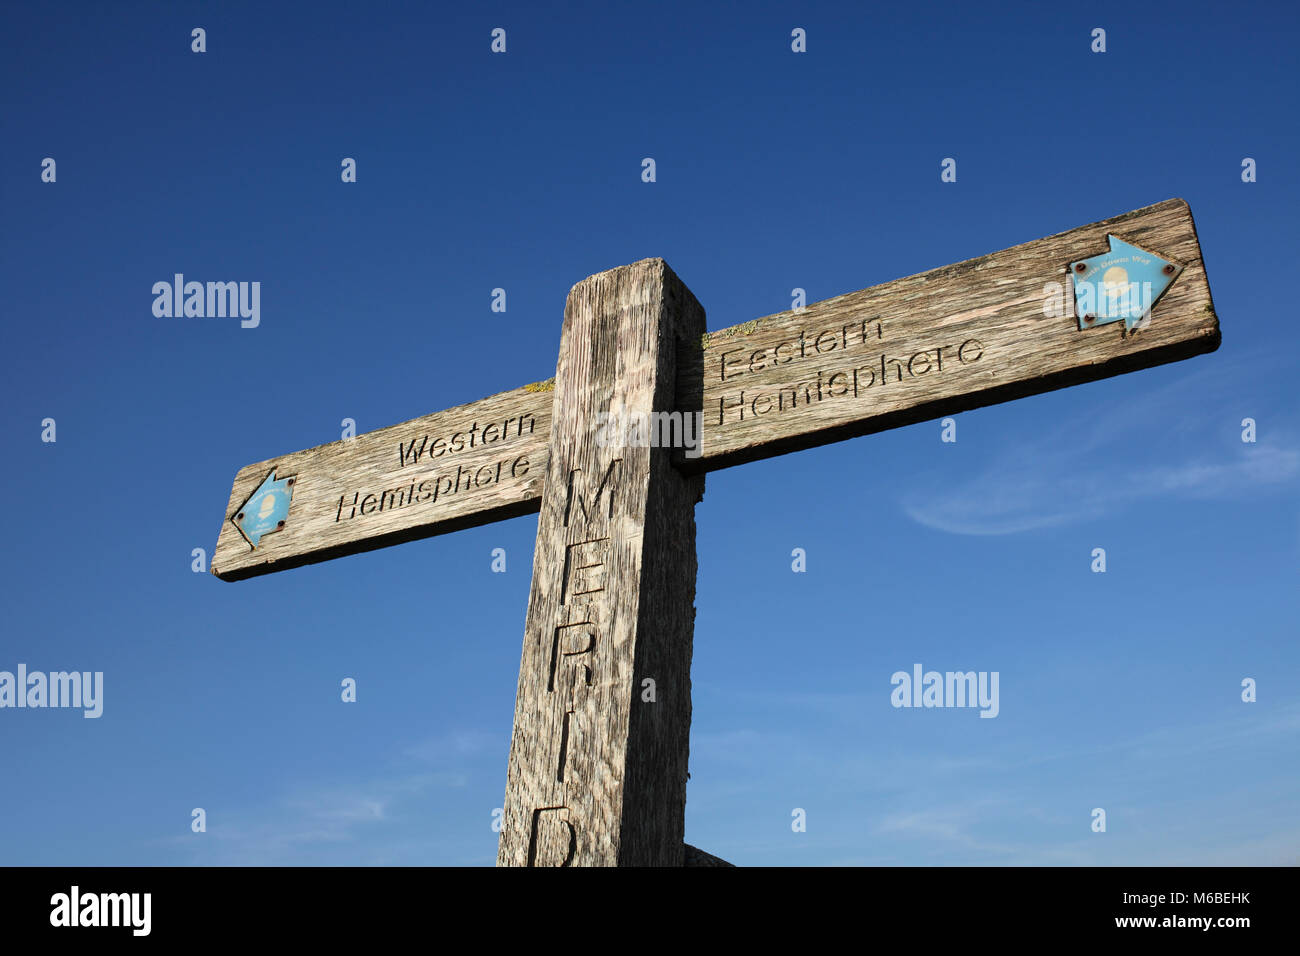 A wooden signpost on the South Downs marking the Greenwich Meridian. It points left to the 'Western Hemisphere' - Stock Image